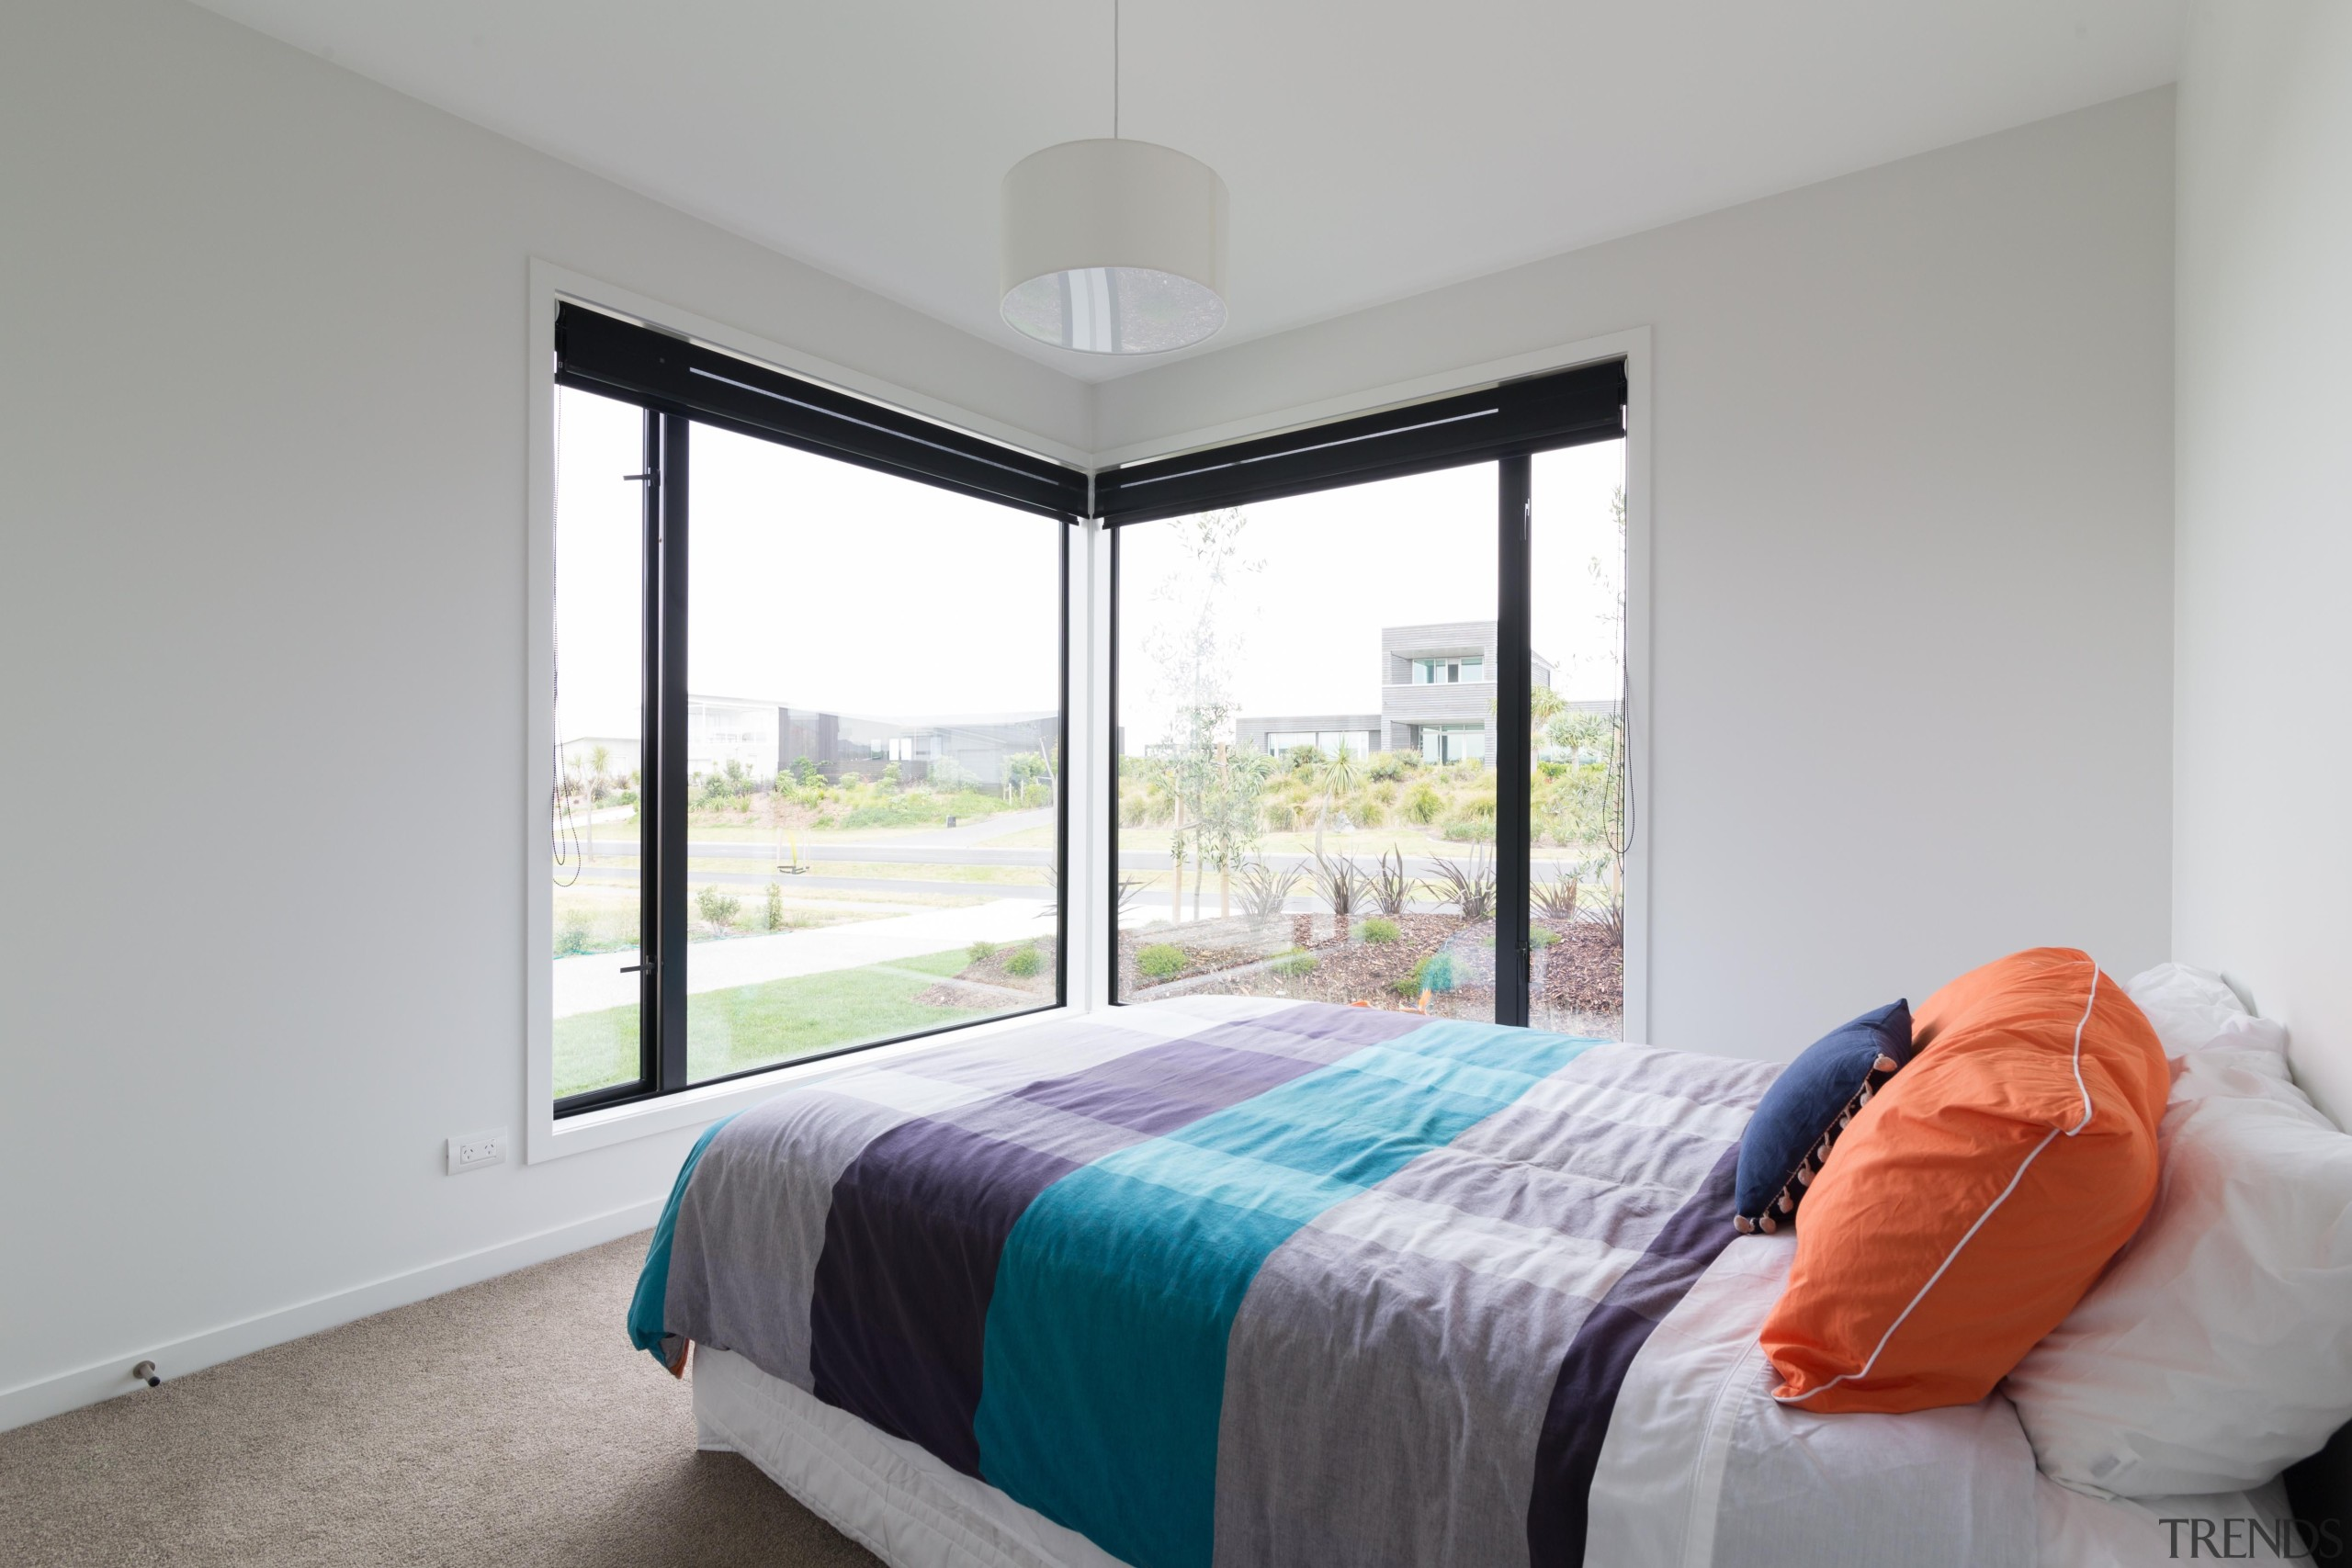 Open, light, bright and airy - this bedroom bed, bed frame, bedroom, estate, home, house, interior design, property, real estate, room, window, gray